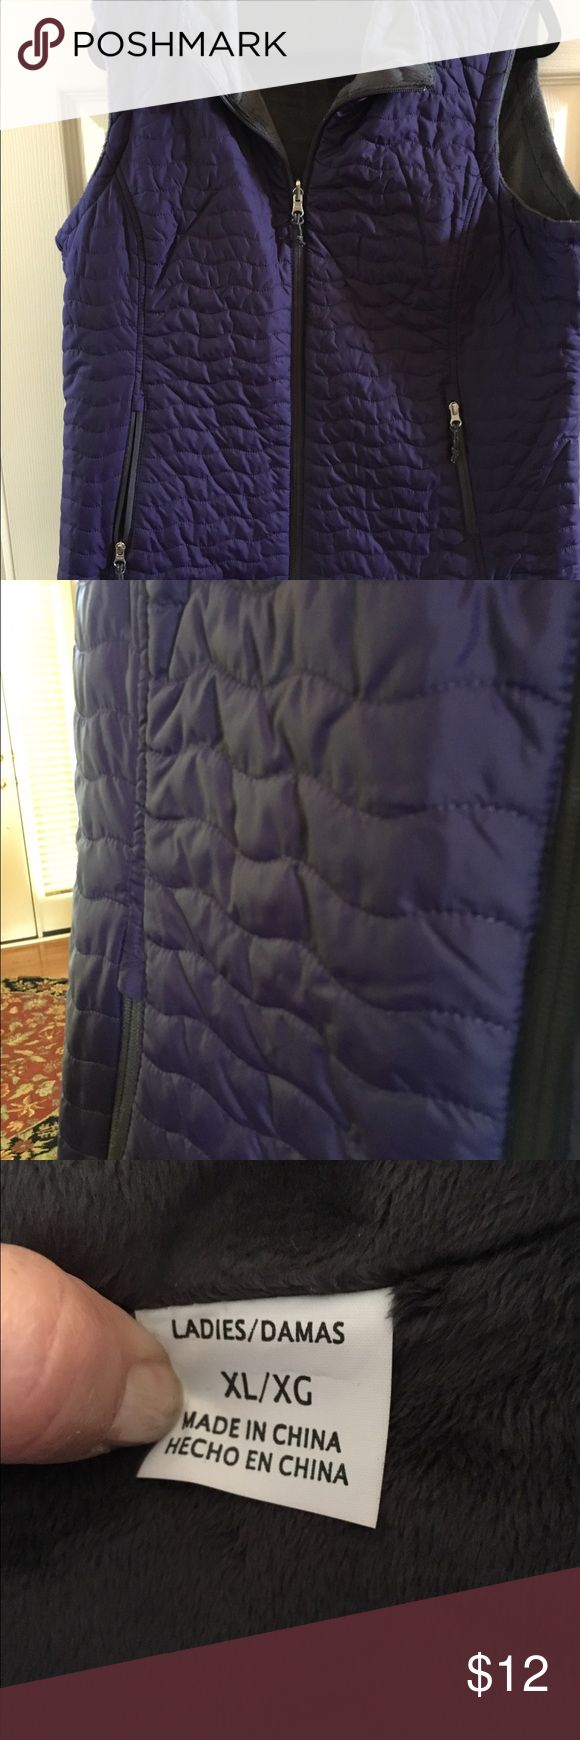 Beautiful Reversible Dusty Purple Vest Quilted ? Fleece? You choose because this one is reversible! In great condition and ready for you to enjoy! Free Country Jackets & Coats Vests